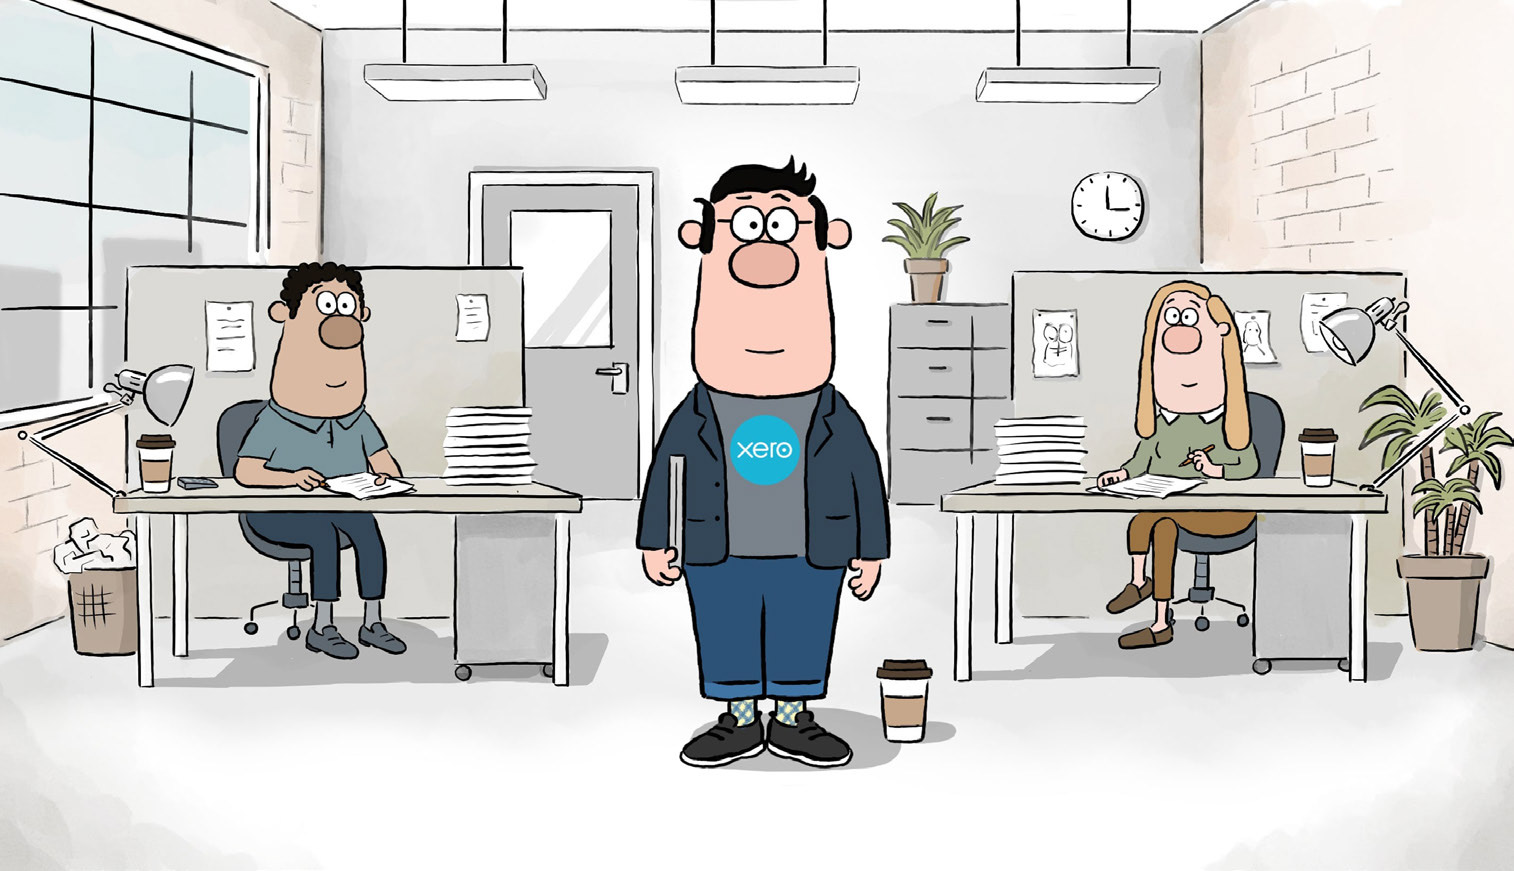 Xero and Making Tax Digital Animated character called Dexter